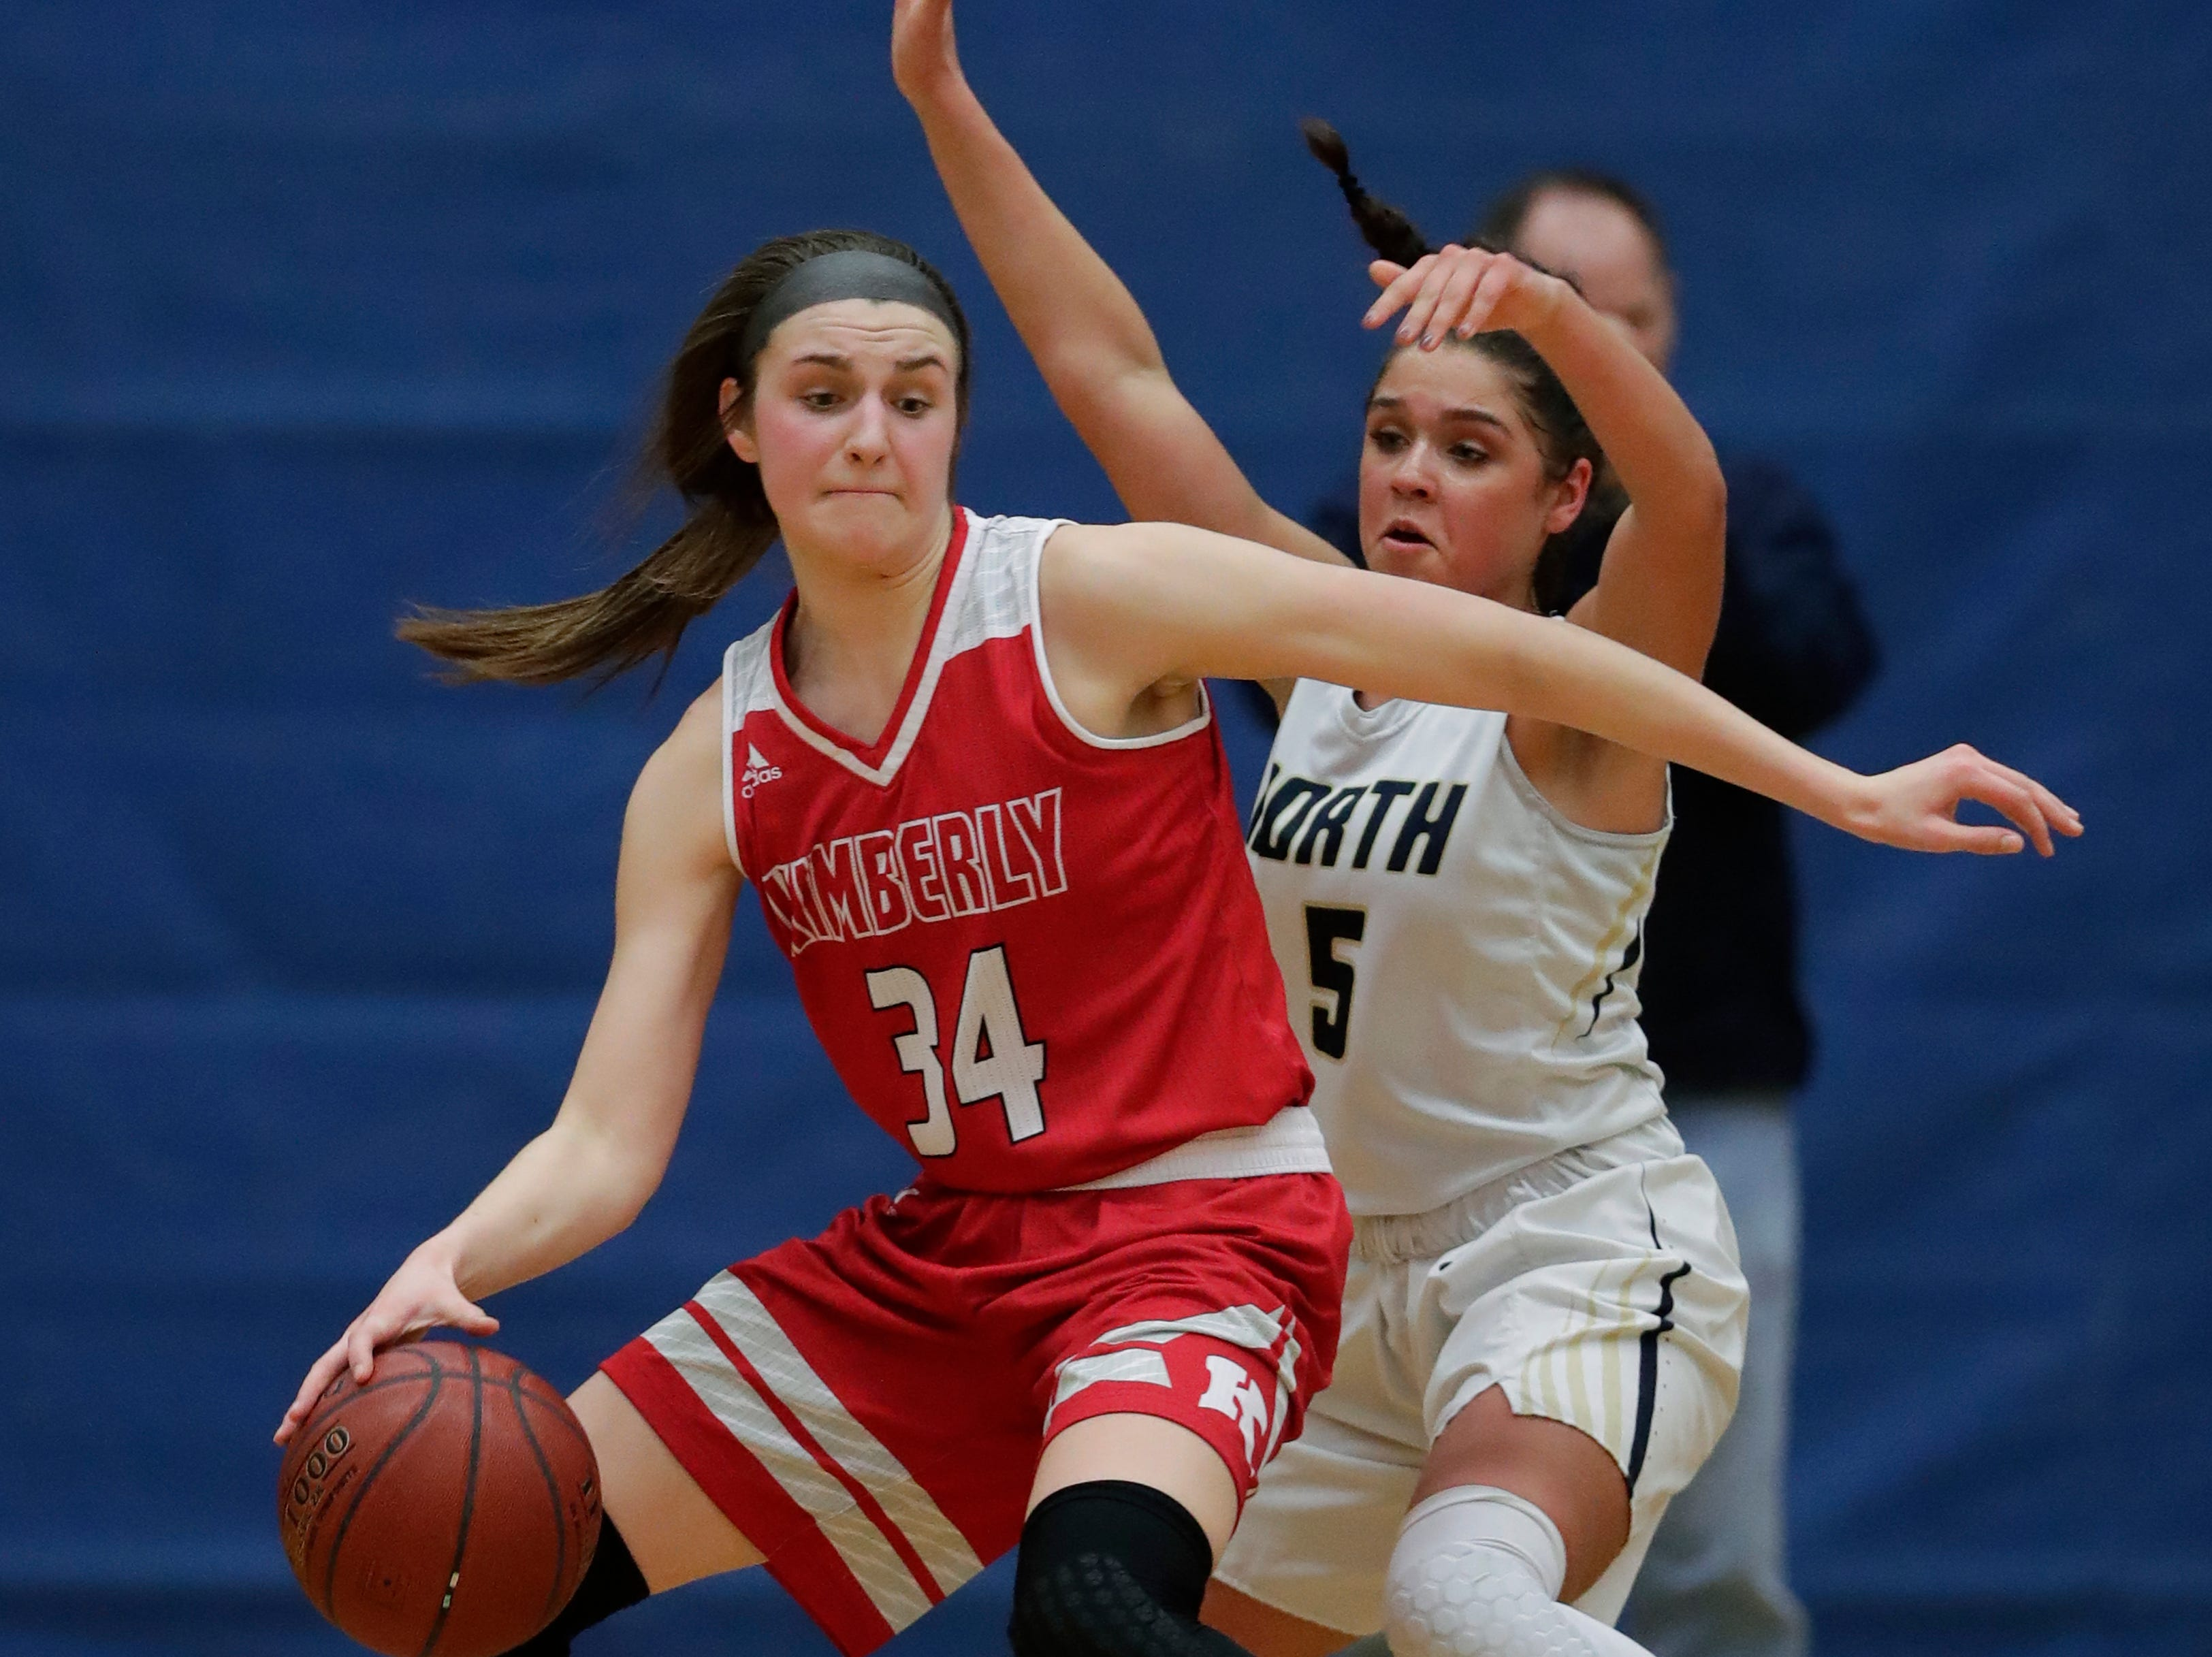 Appleton North High School's Niki Van Wyk (5) defends against Kimberly High School's Maddy Schreiber (34) during their girls basketball game Tuesday, January 8, 2019, in Appleton, Wis. Dan Powers/USA TODAY NETWORK-Wisconsin